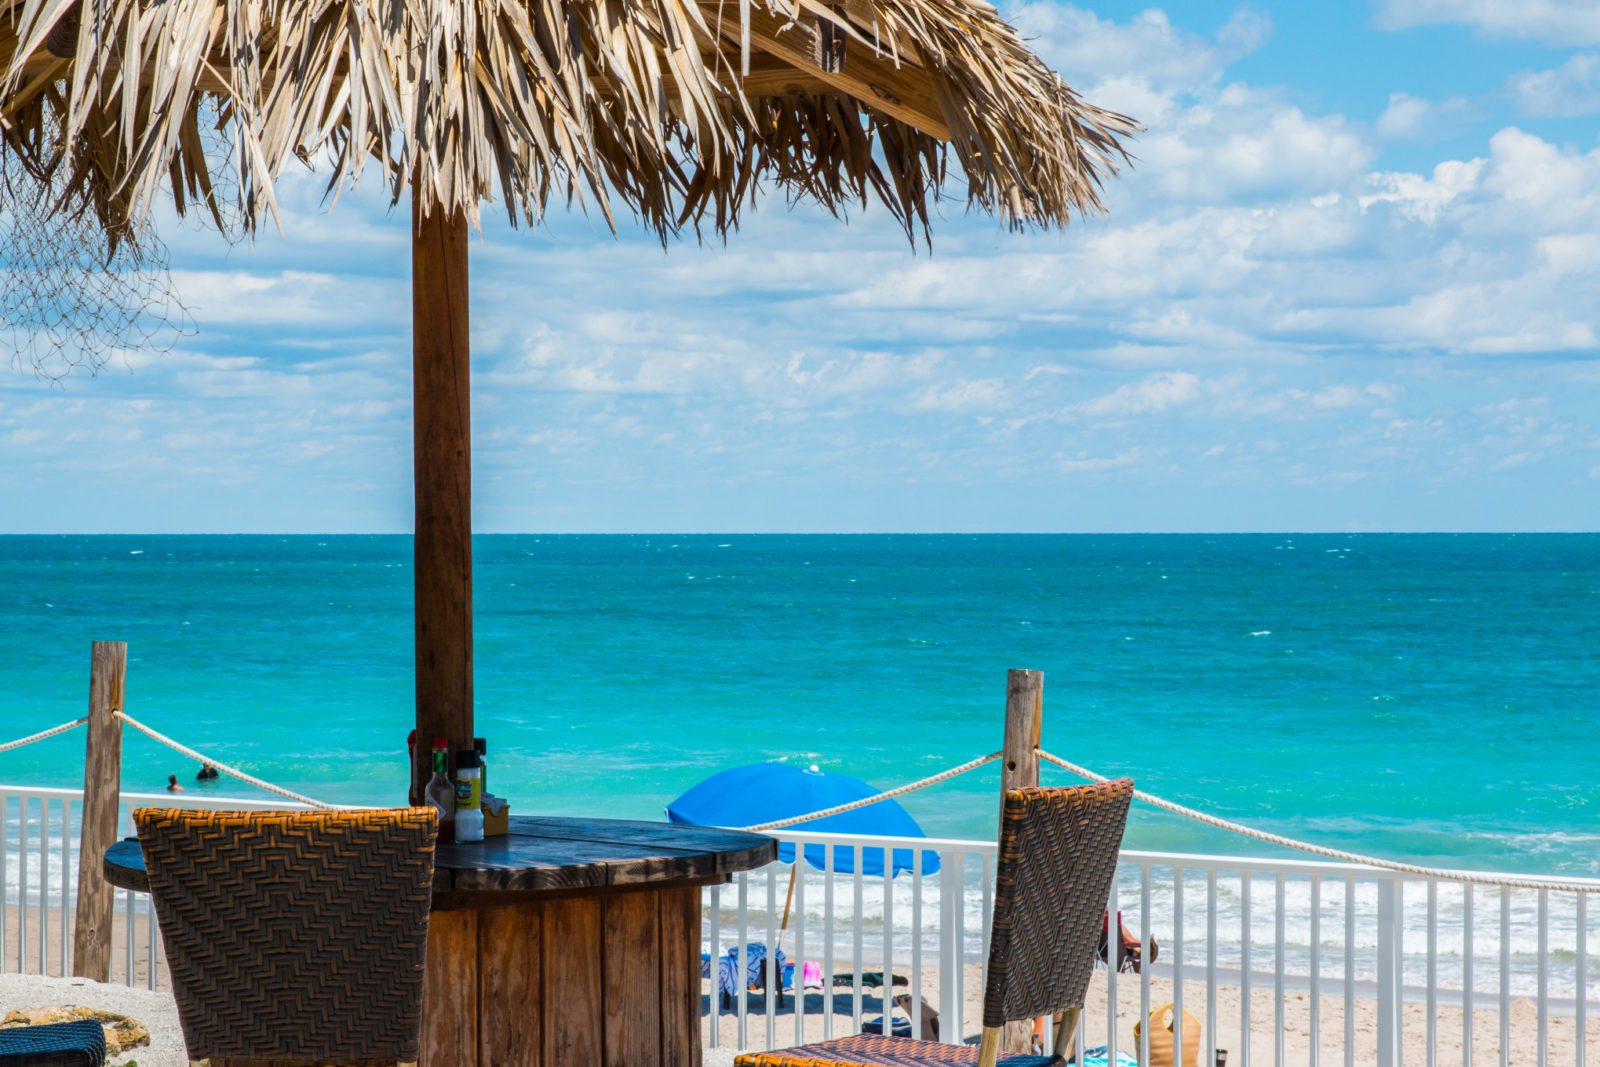 Thatched umbrella and table overlooking the water in Vero Beach Florida